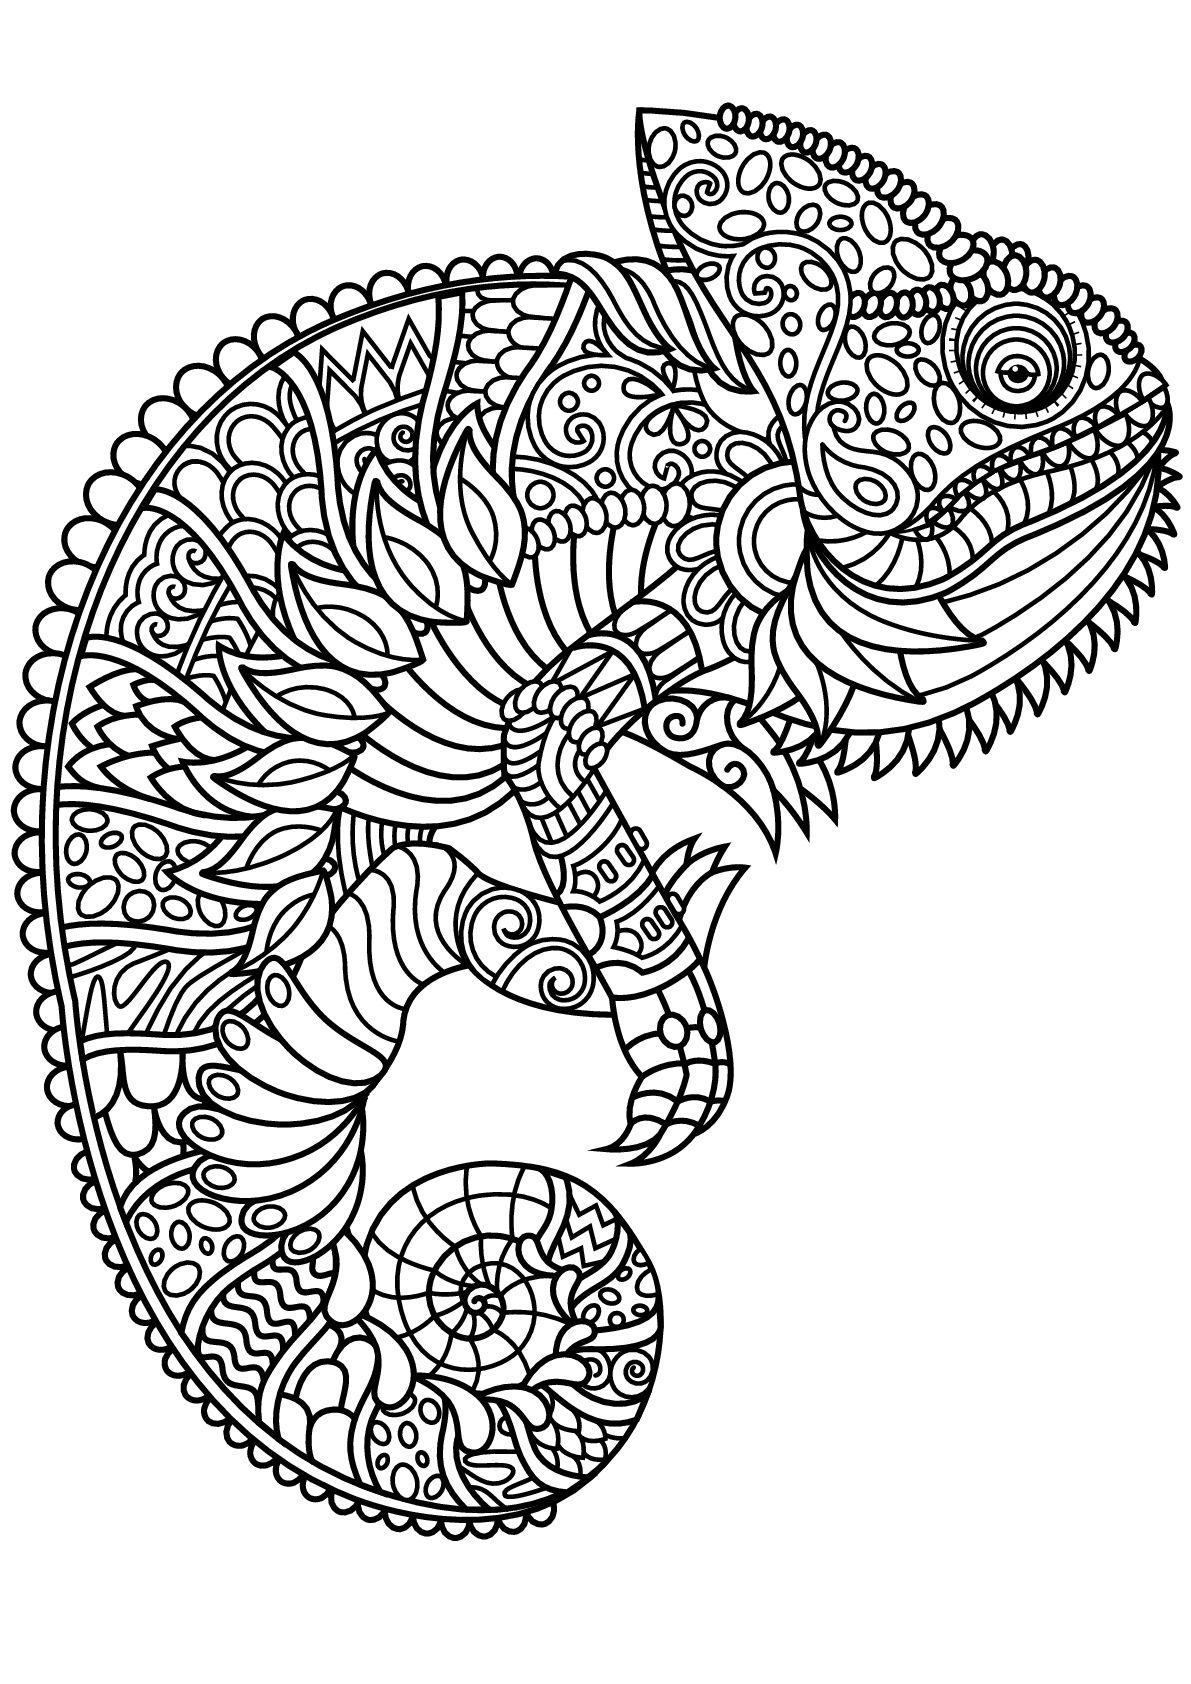 Chameleon, with complex and beautiful patterns, From the